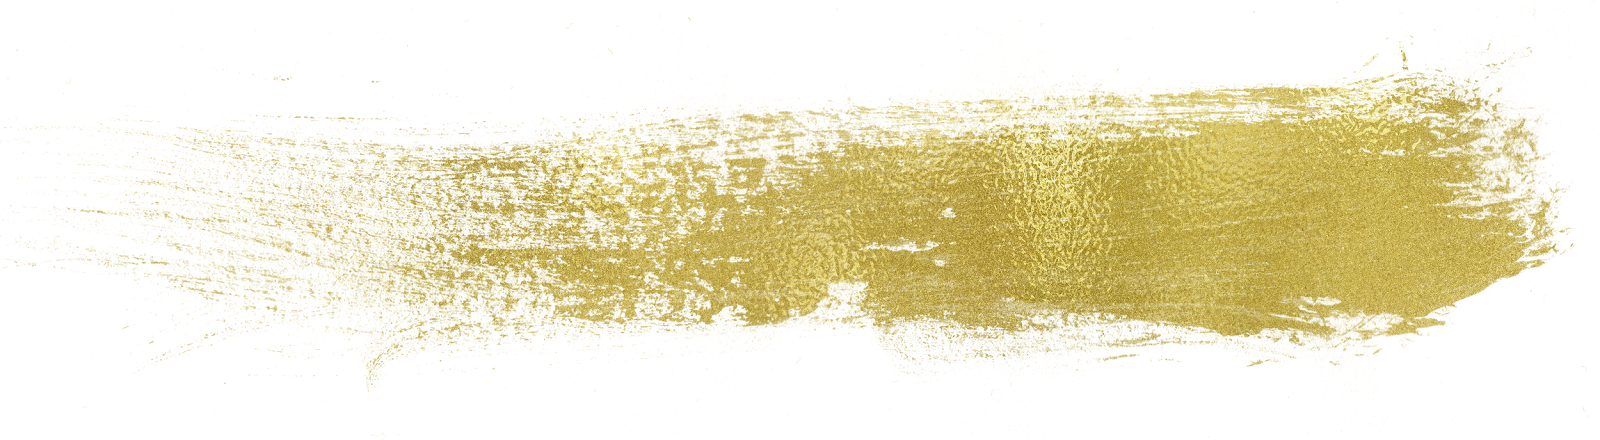 Gold brush stroke png. Reality